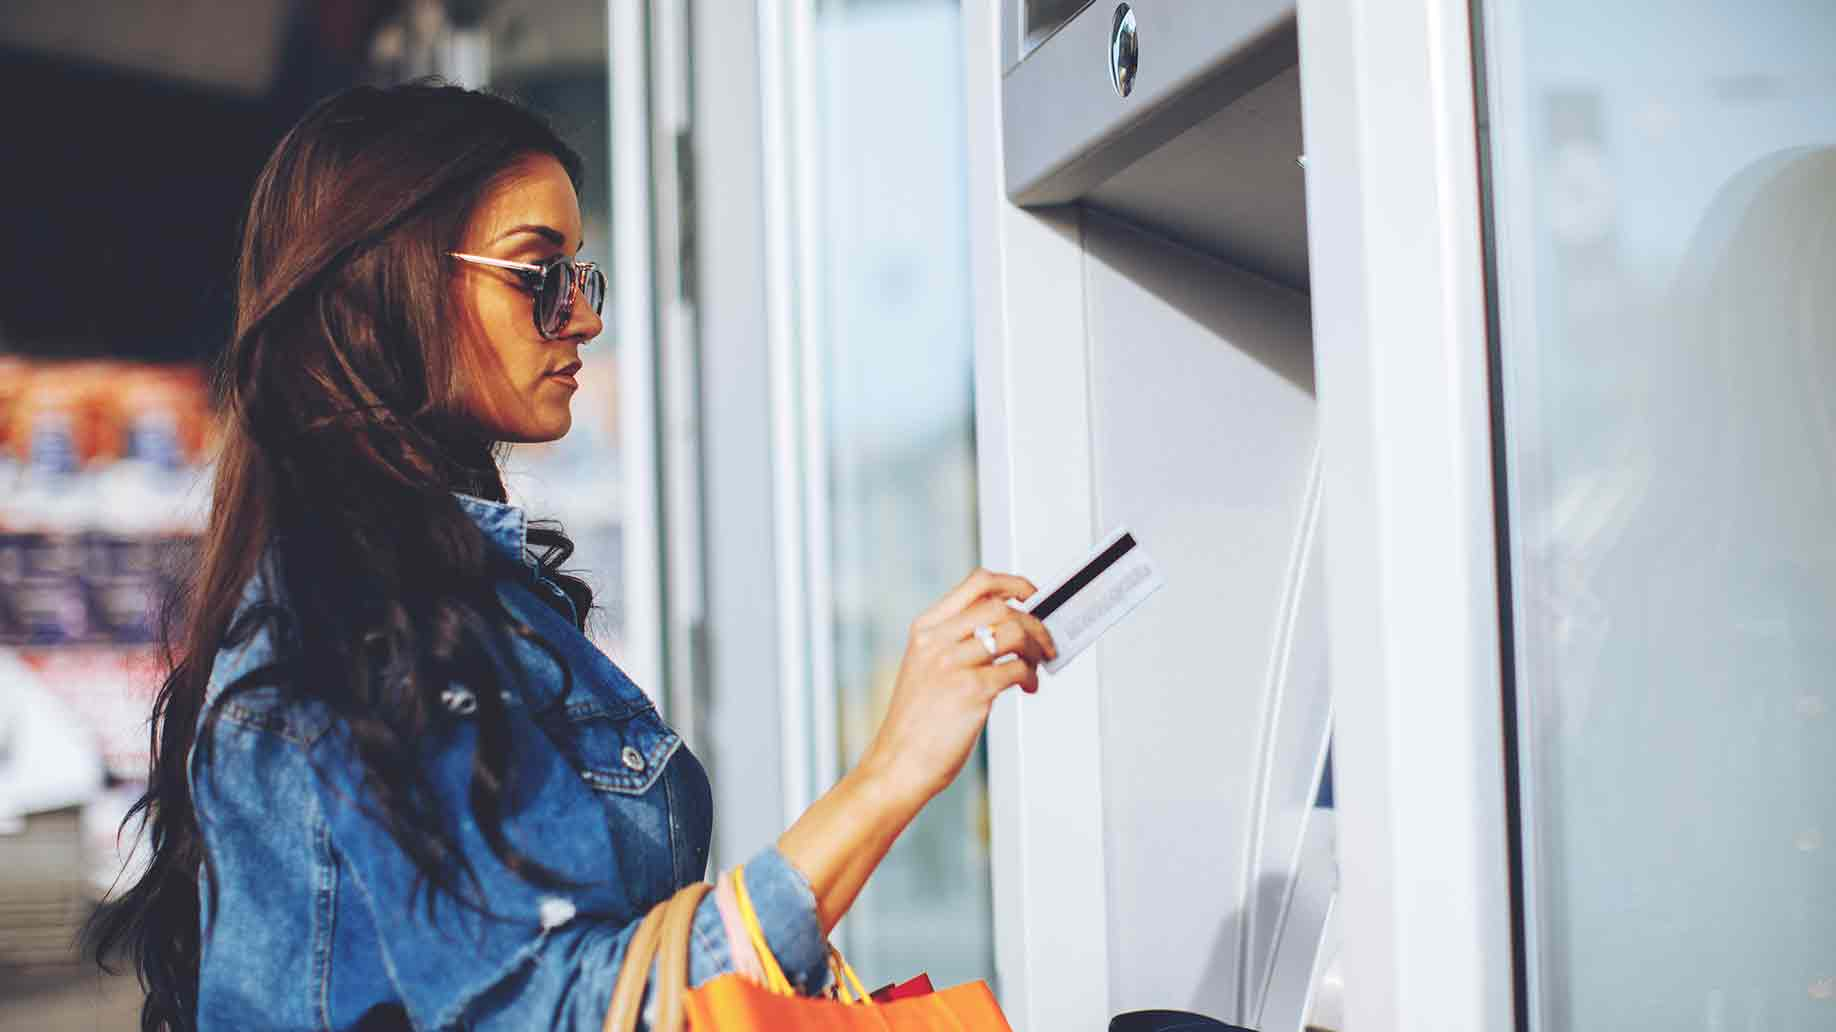 woman withdrawing money from credit card at atm machine